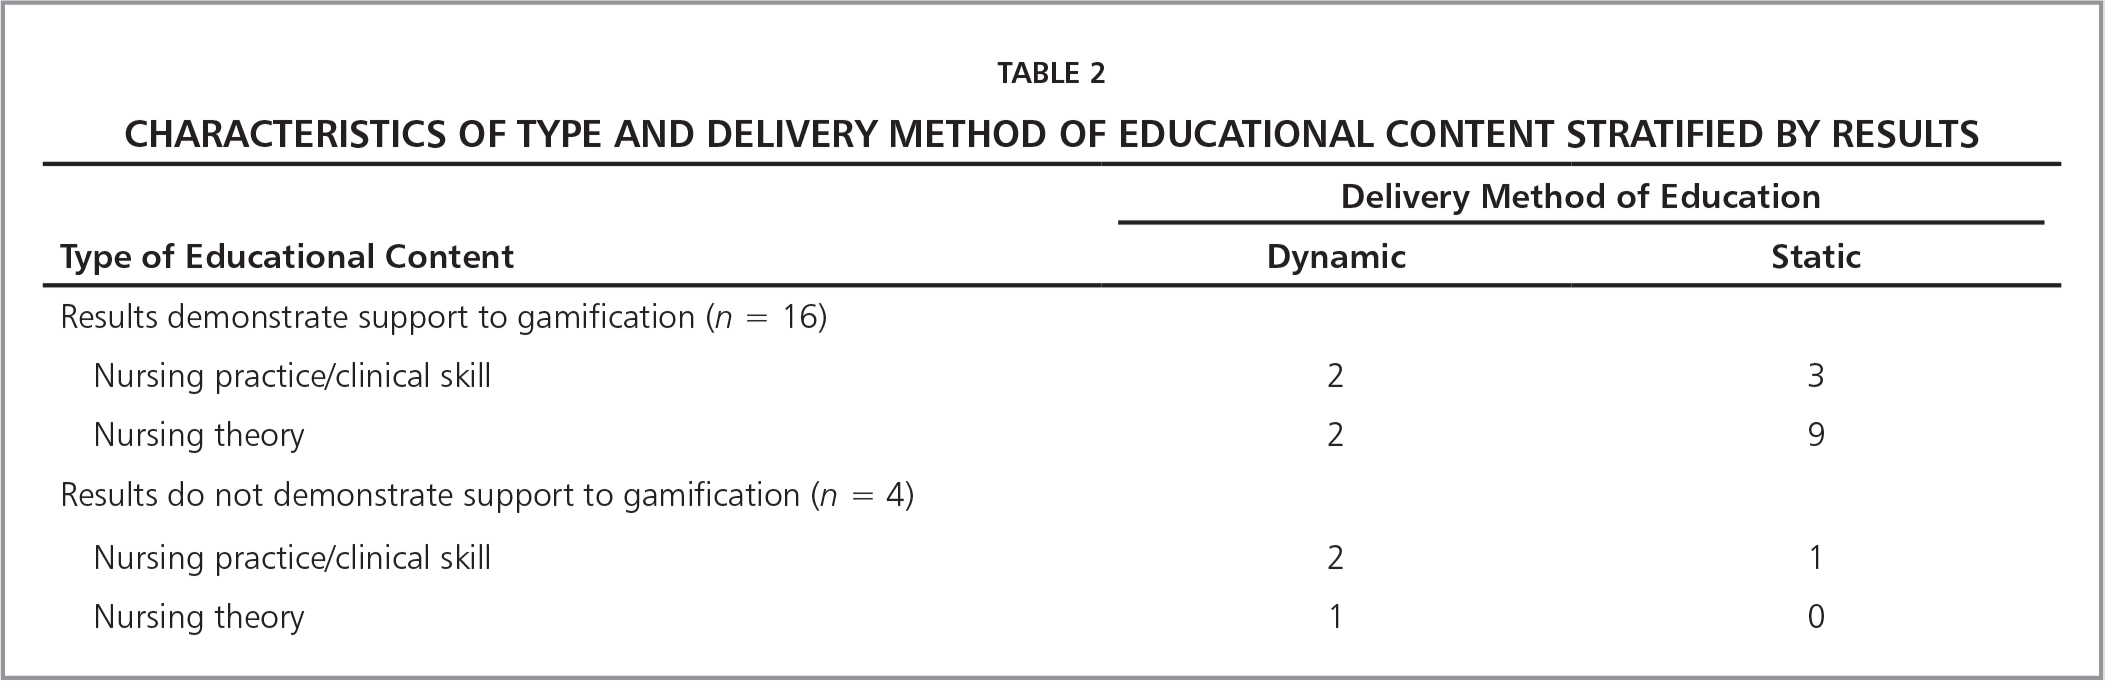 Characteristics of Type and Delivery Method of Educational Content Stratified by Results